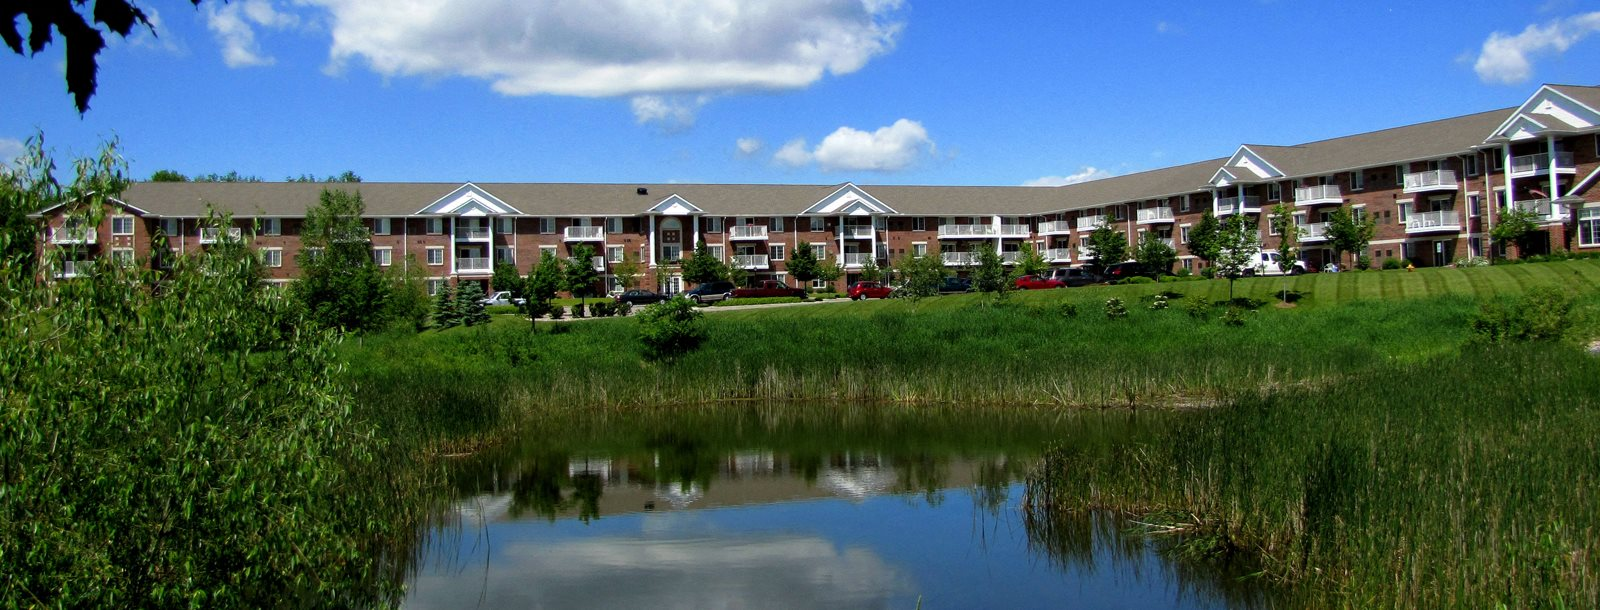 Birchwood Highlands Apartments 55+ | Apartments in Weston, WI |